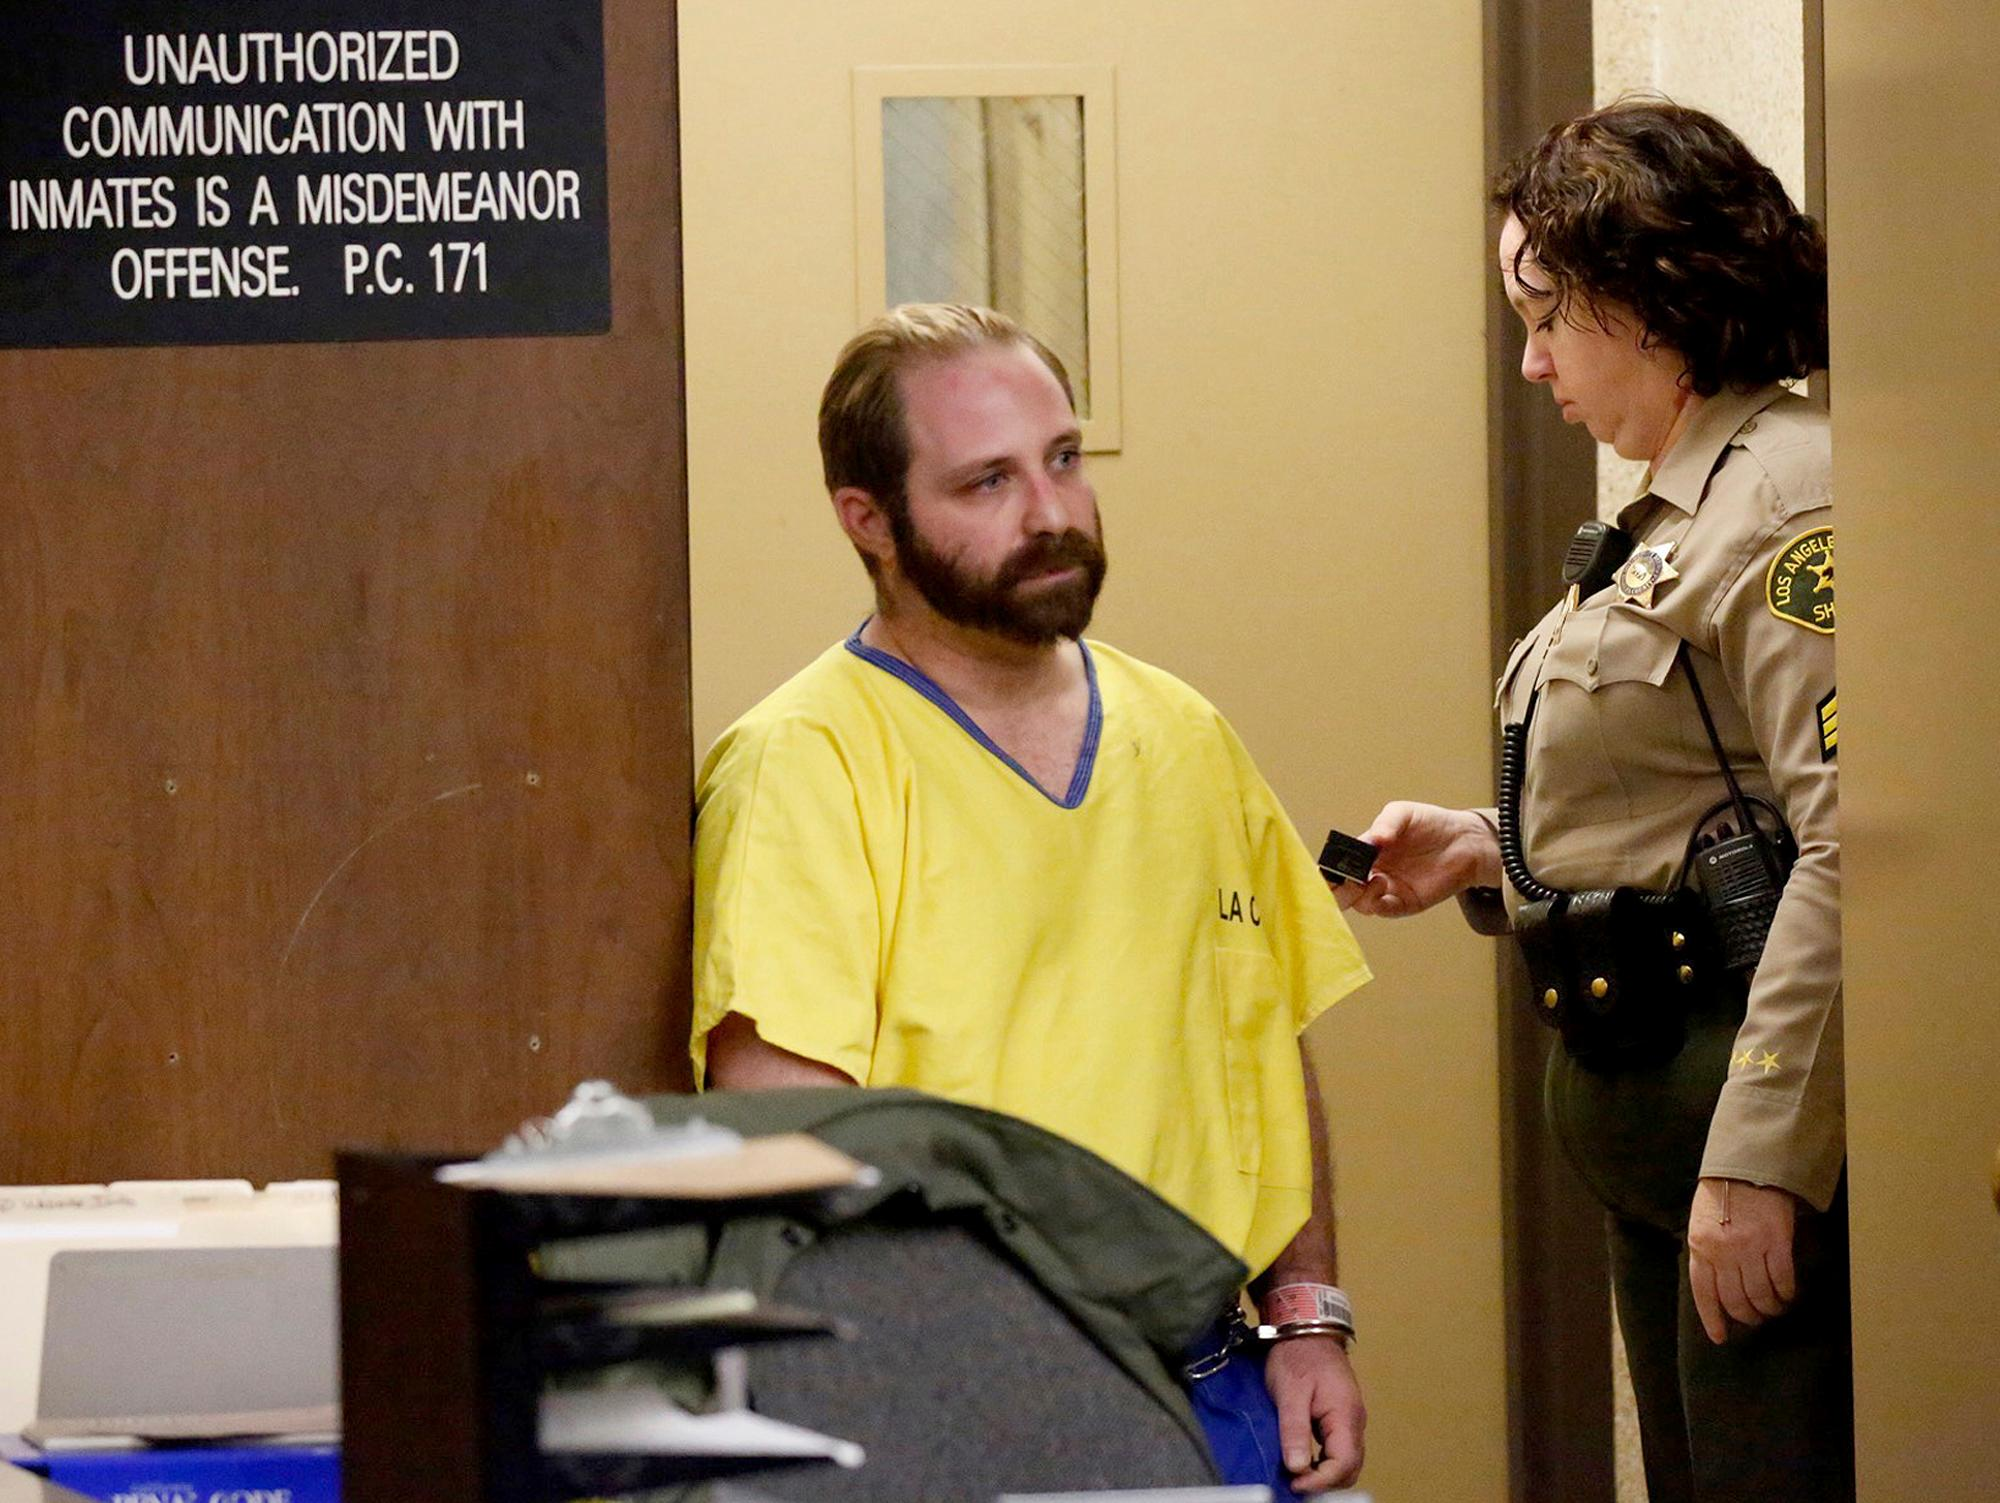 Aramazd Andressian Sr., accused in his 5-year-old son's death, enters the courtroom in Los Angeles County Superior Court in Alhambra Tuesday, Aug. 1, 2017. Andressian Sr. changed his plea in the killing to guilty and will be sentenced to 25 years to life in prison when he returns to court on Aug. 23. (Al Seib/Los Angeles Times via AP, Pool)